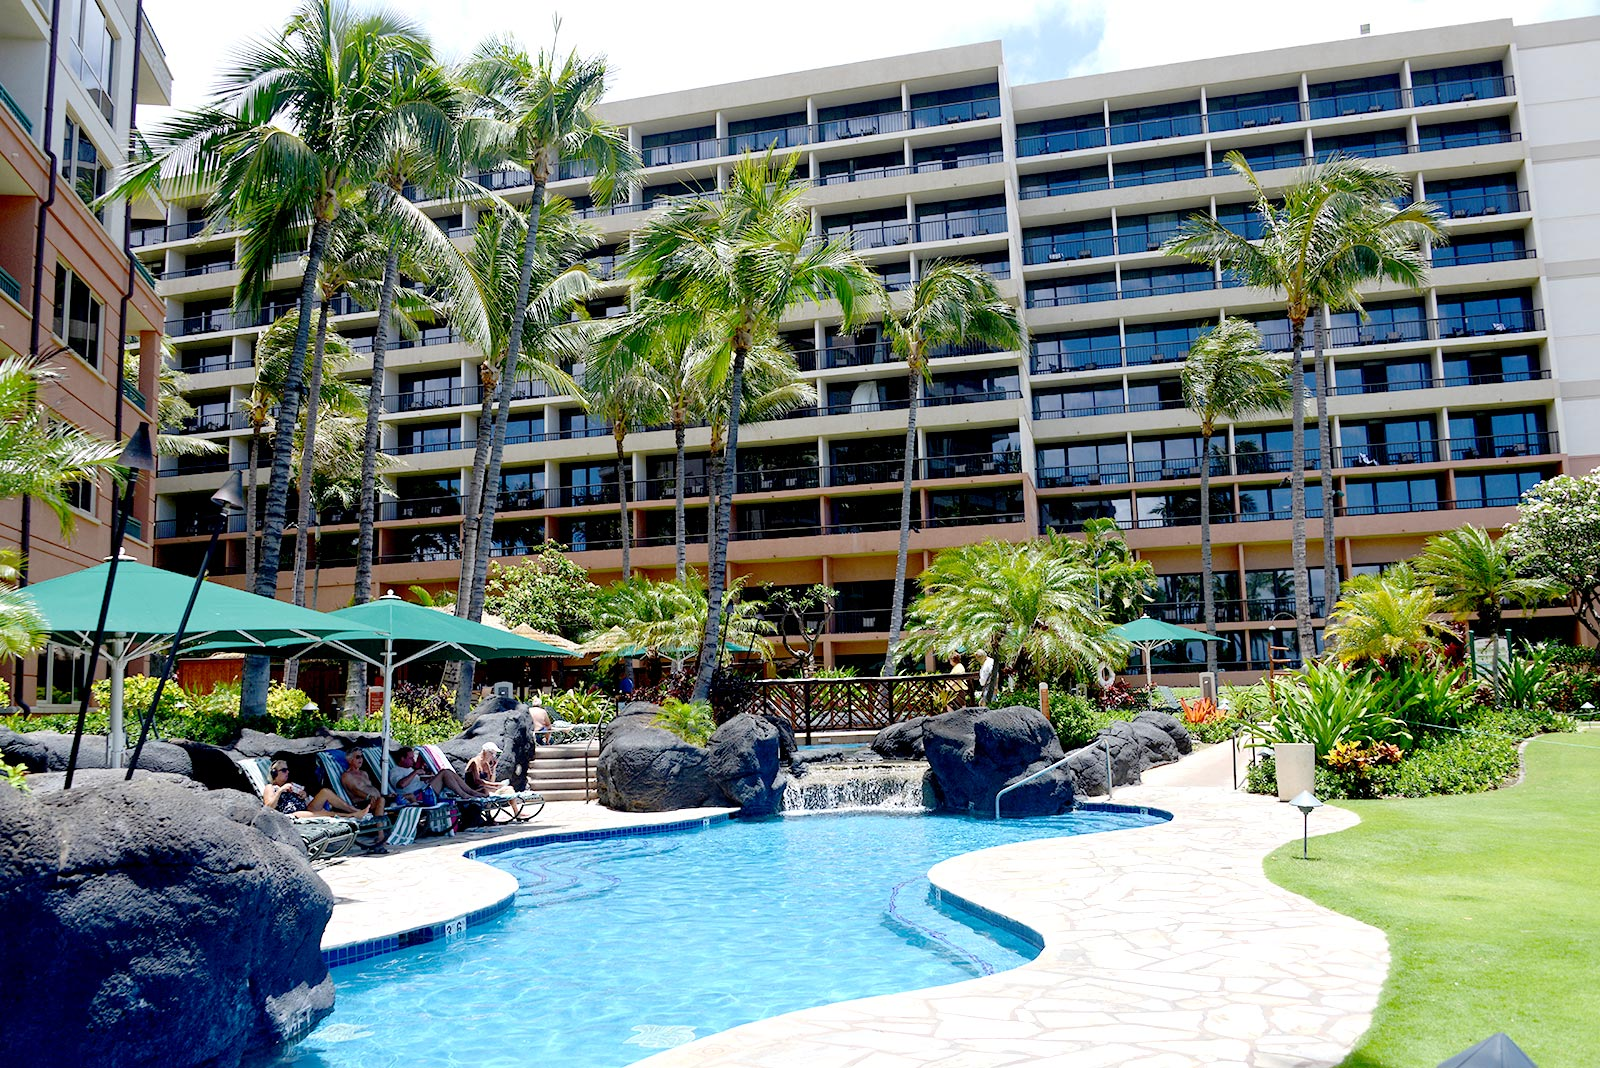 Marriott Maui Ocean Club Lahaina and Napili Tower timeshare resales